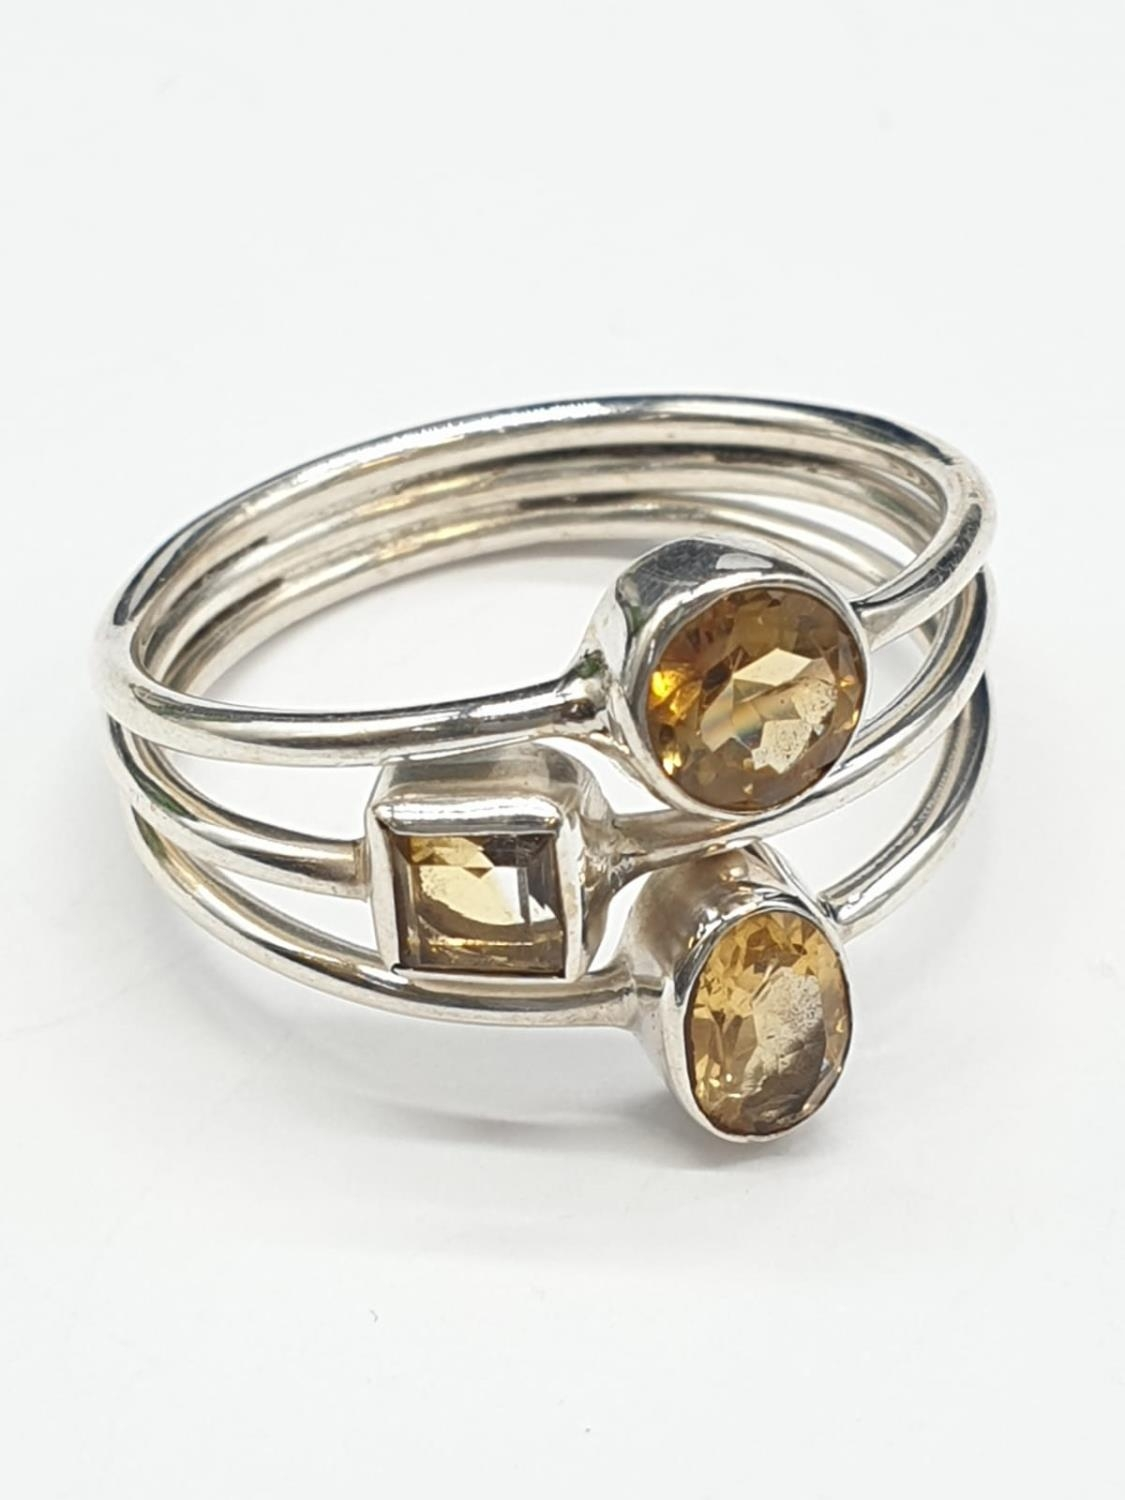 Marquise Shape Citrine Bracelet with Matching Dangler Earrings and Ring in Sterling Silver. Ring - Image 4 of 6